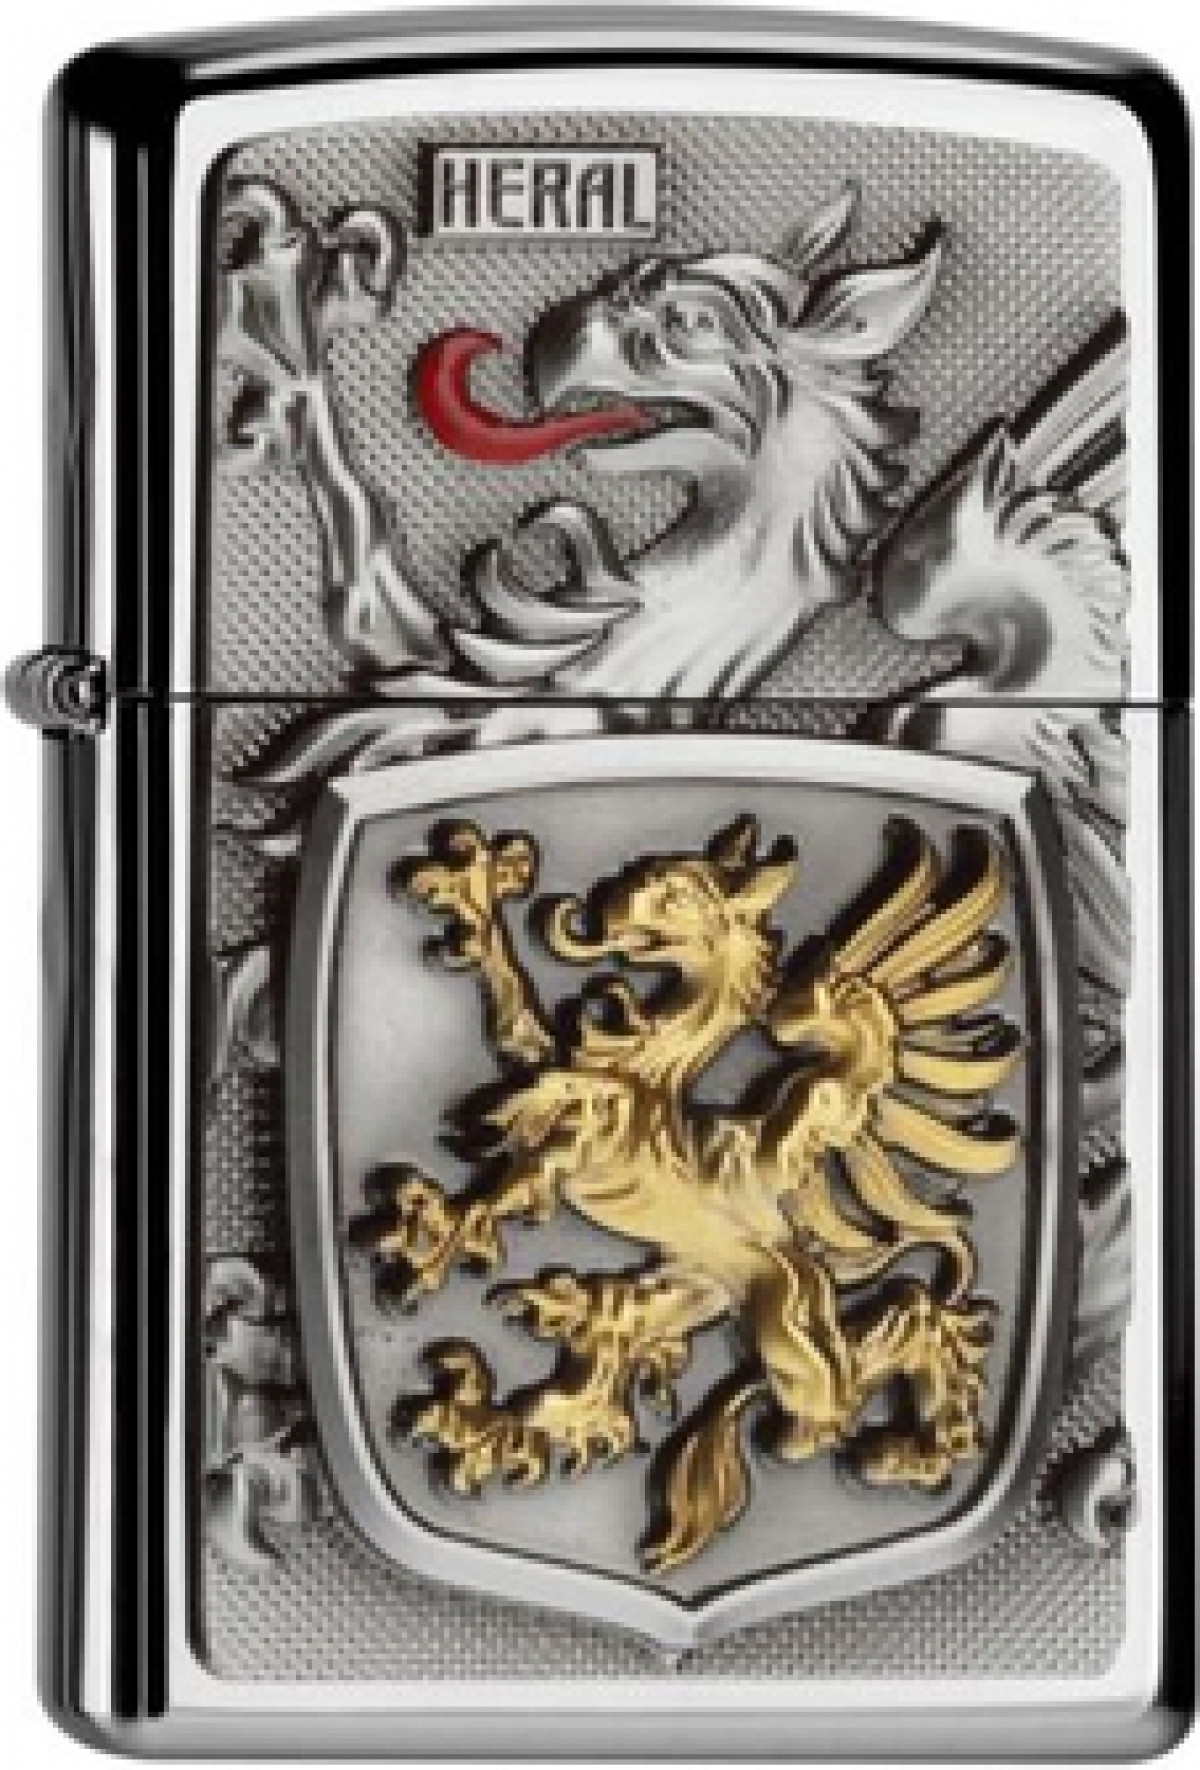 Zippo Lighter Heral Condaro Limited Edition 2004546